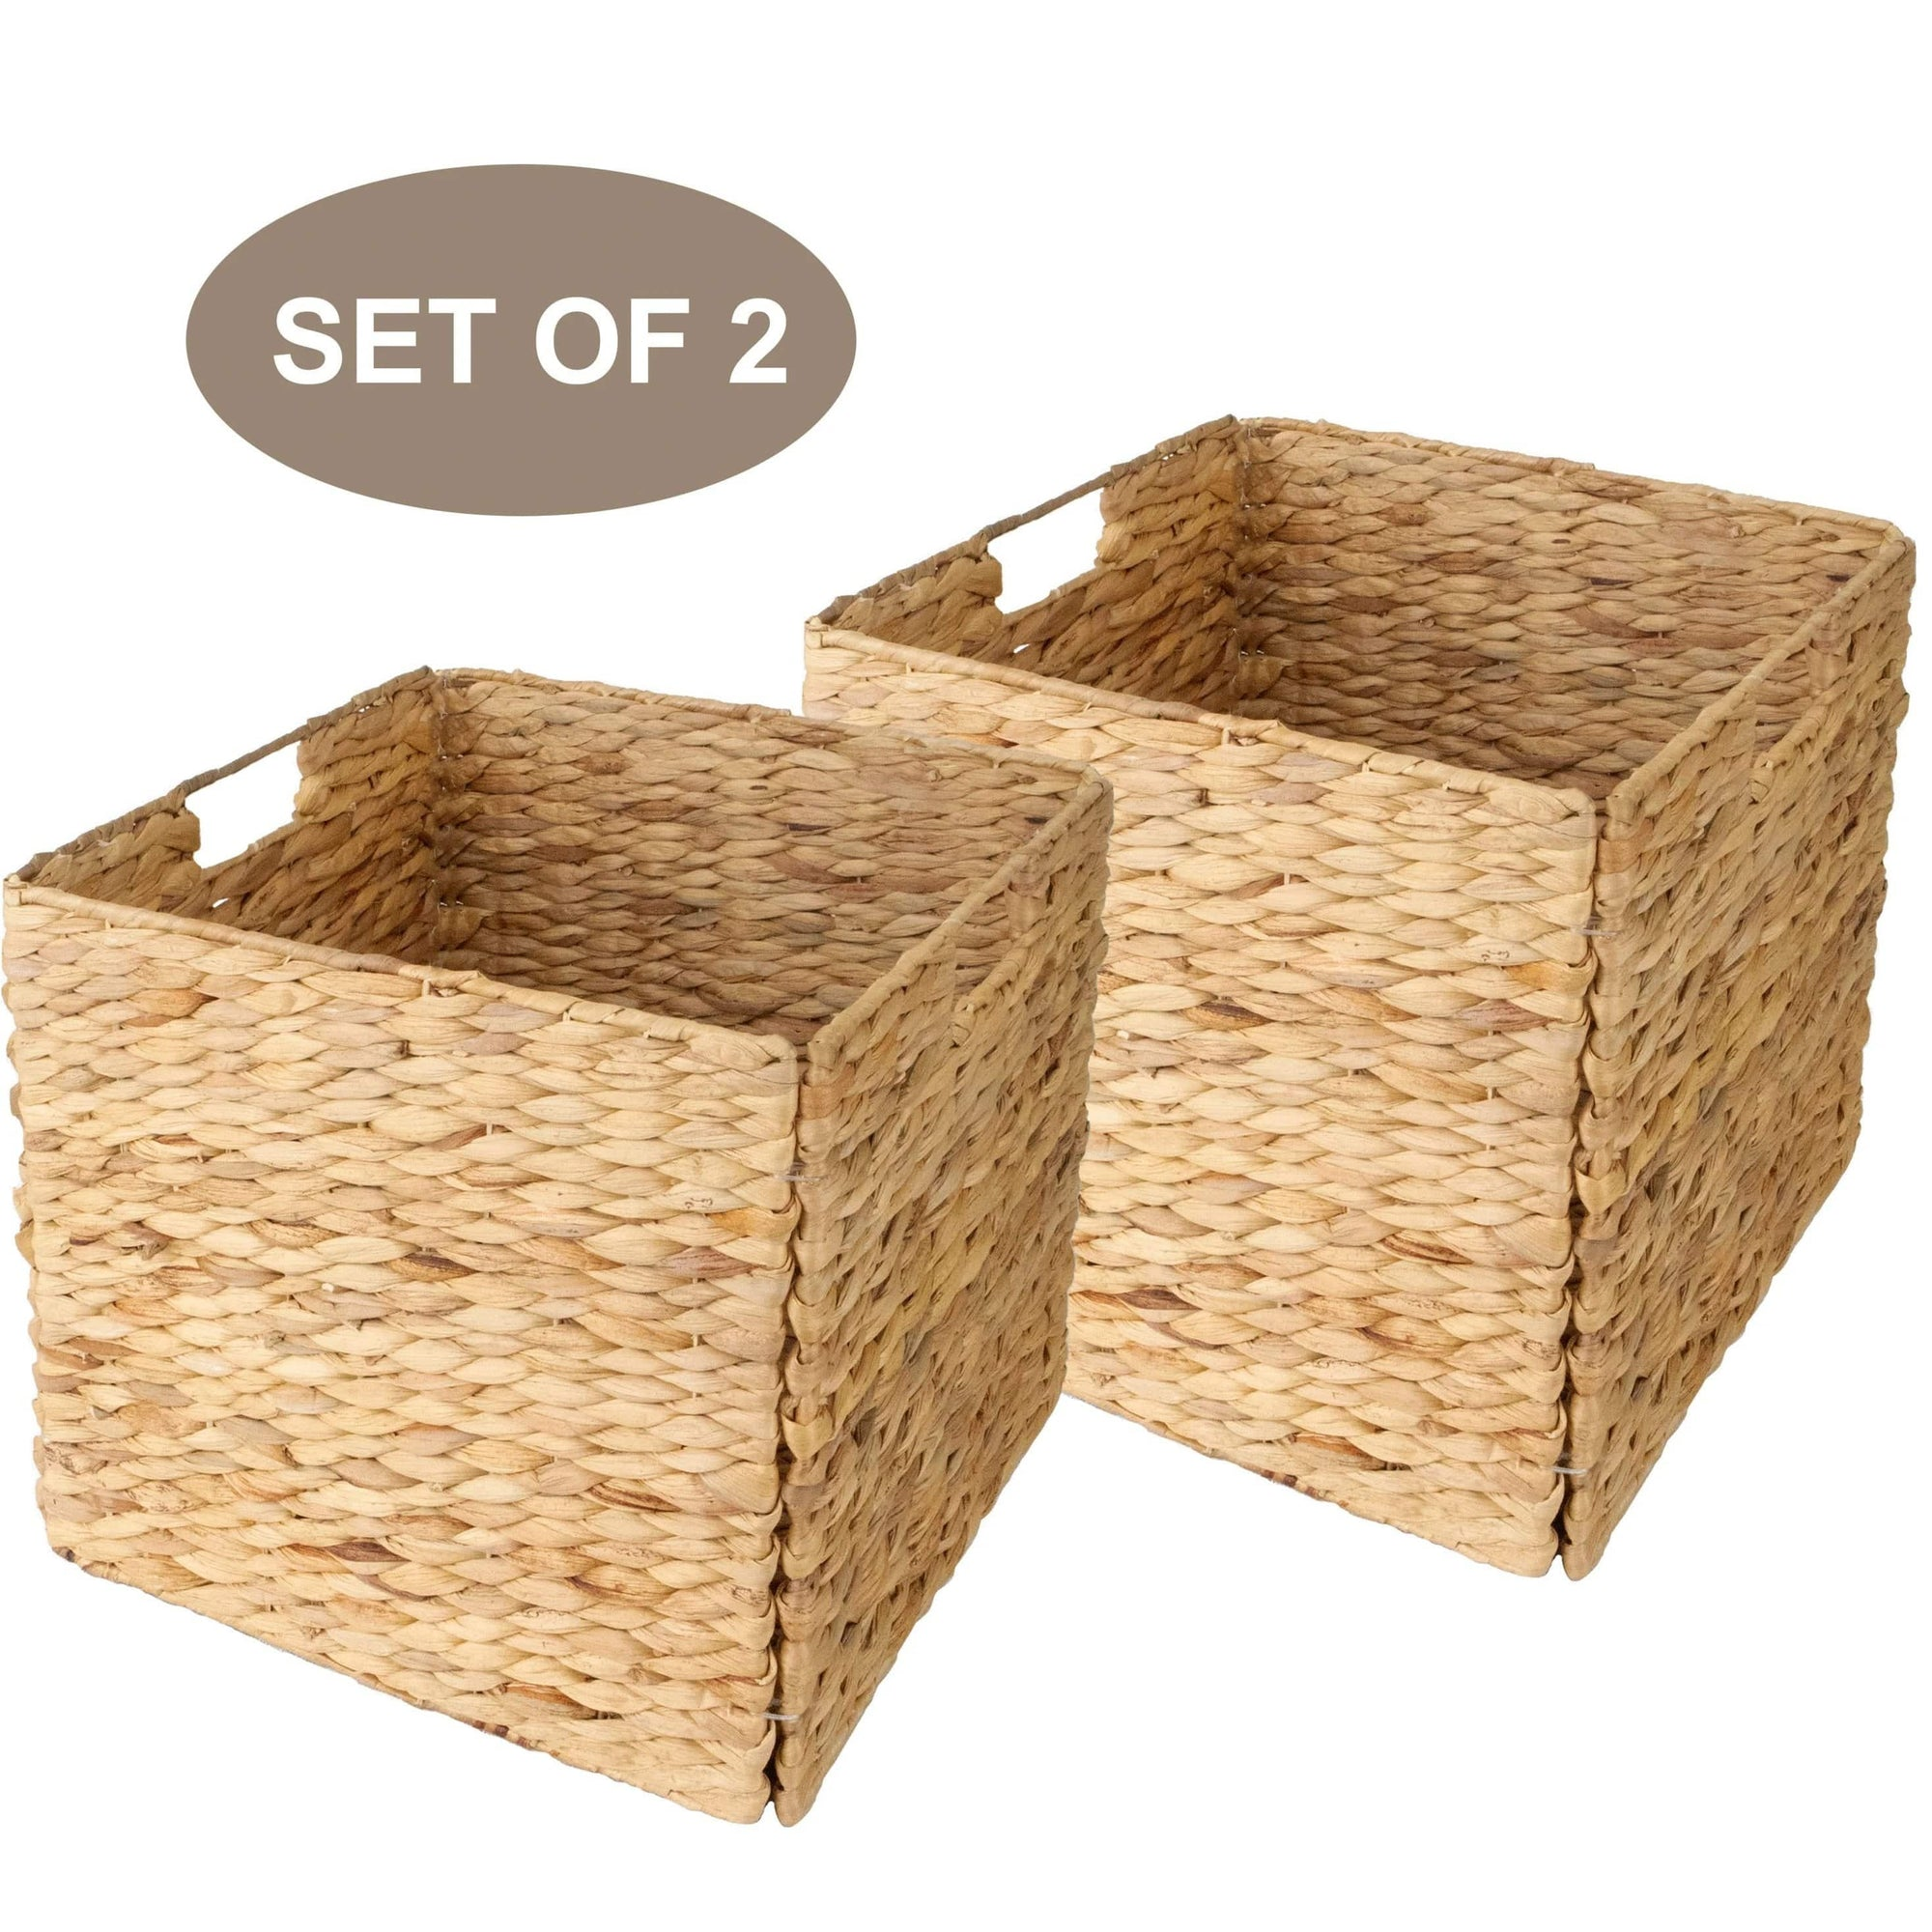 Made Terra Seagrass storage basket Set of 2 12x12 Wicker Storage Cube Basket | Water Hyacinth Storage Bin for Better Organization